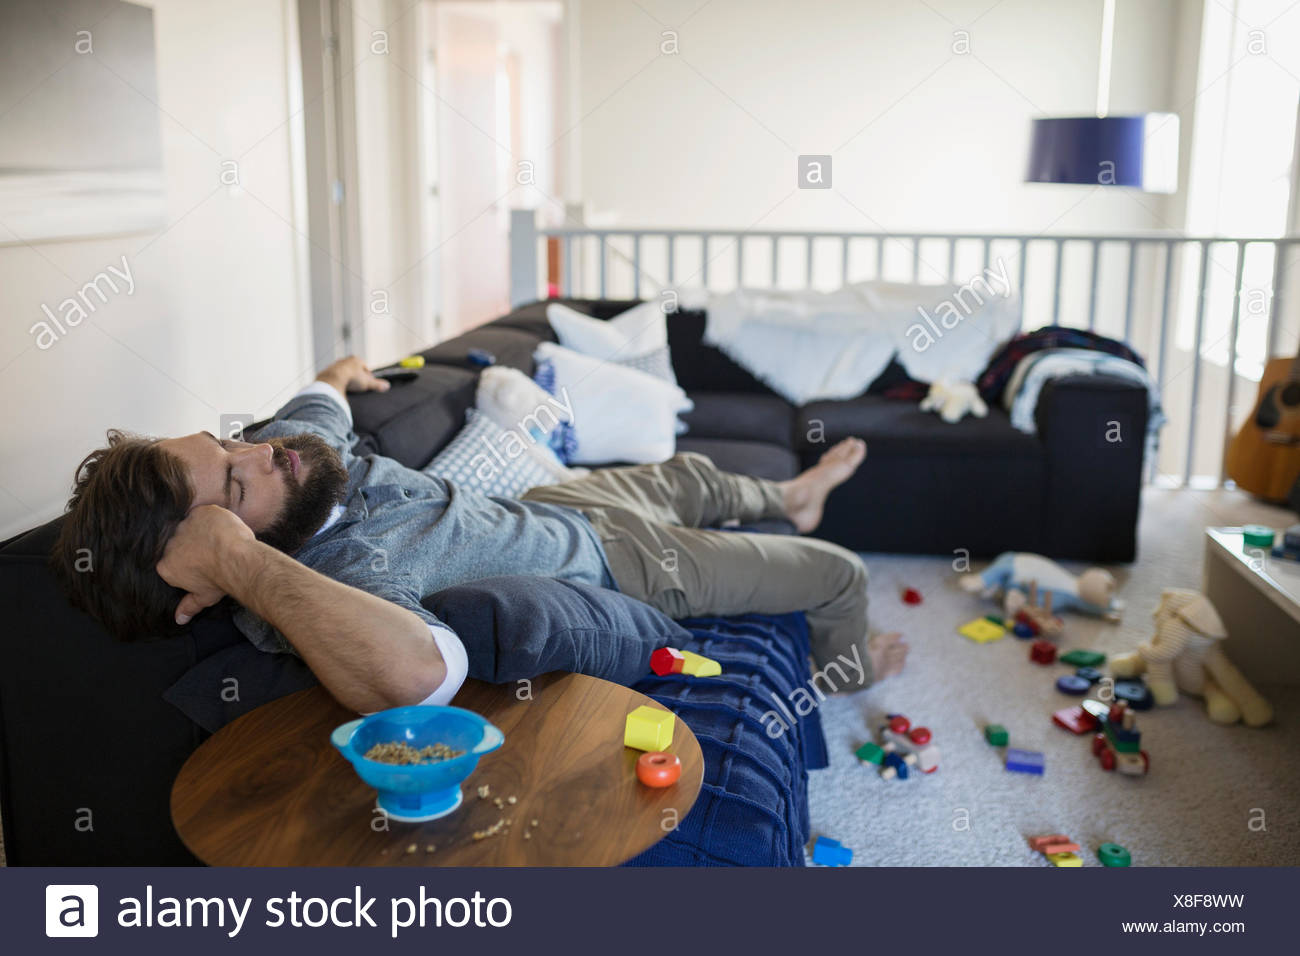 Exhausted man napping on sofa surrounded by toys - Stock Image